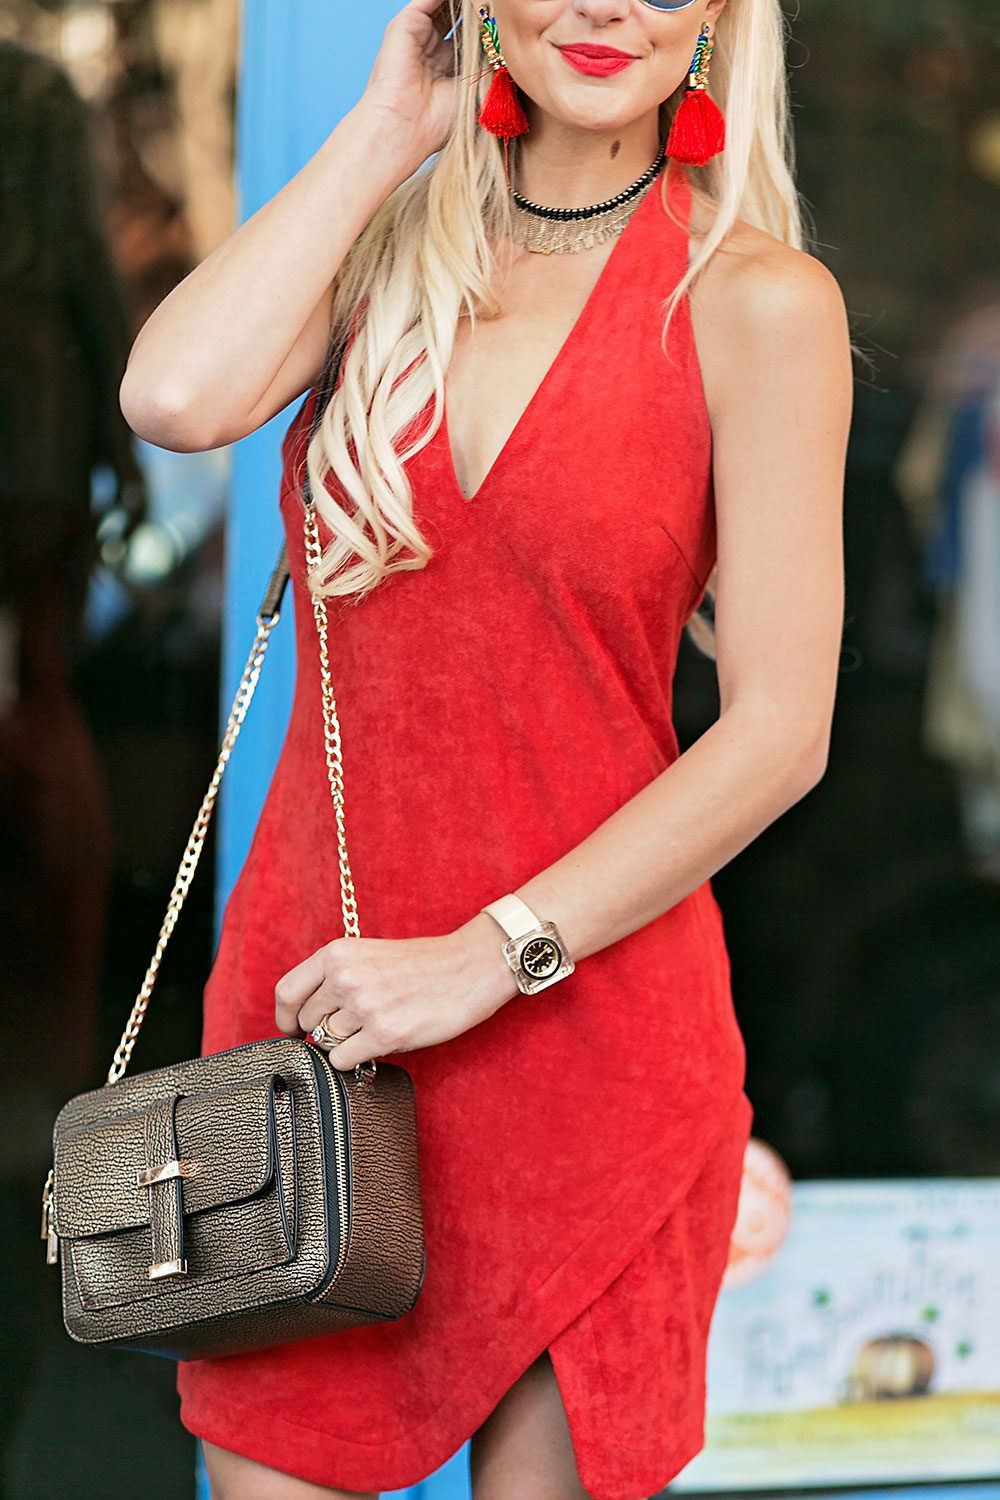 vandi-fair-blog-lauren-vandiver-dallas-texas-southern-fashion-blogger-the-styled-collection-red-halter-dress-suede-ramona-bronze-crossbody-bag-red-fringe-statement-earrings-2